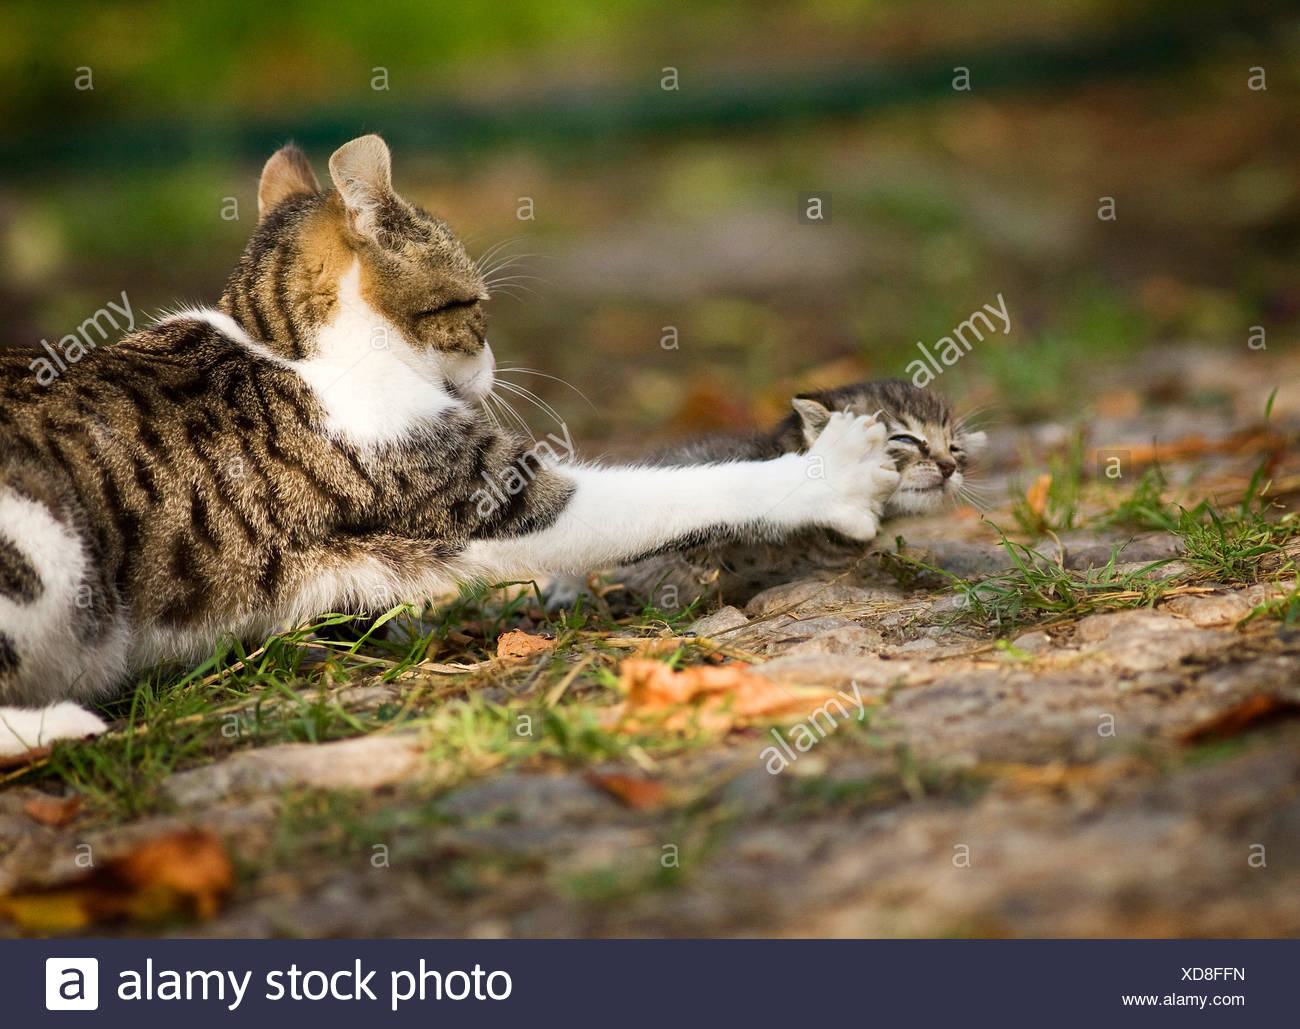 domestic cat, house cat (Felis silvestris f. catus), hitting a strange kitten, Germany - Stock Image